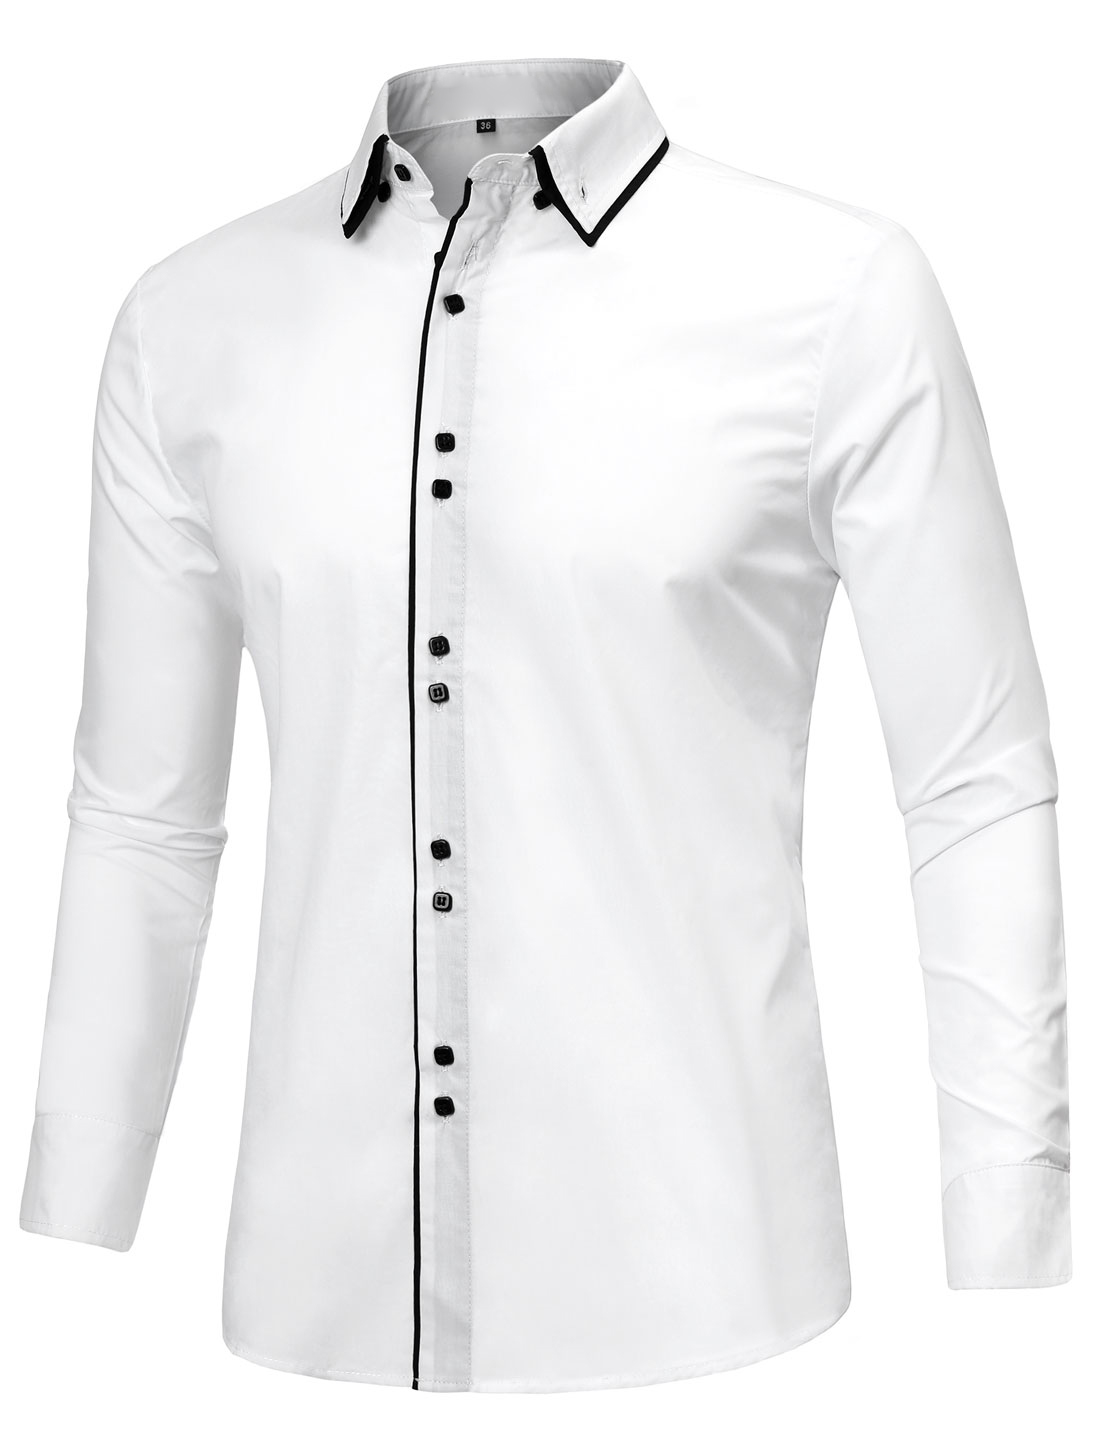 Men Tiered Point Collar Long Sleeve Button Down Shirt White M